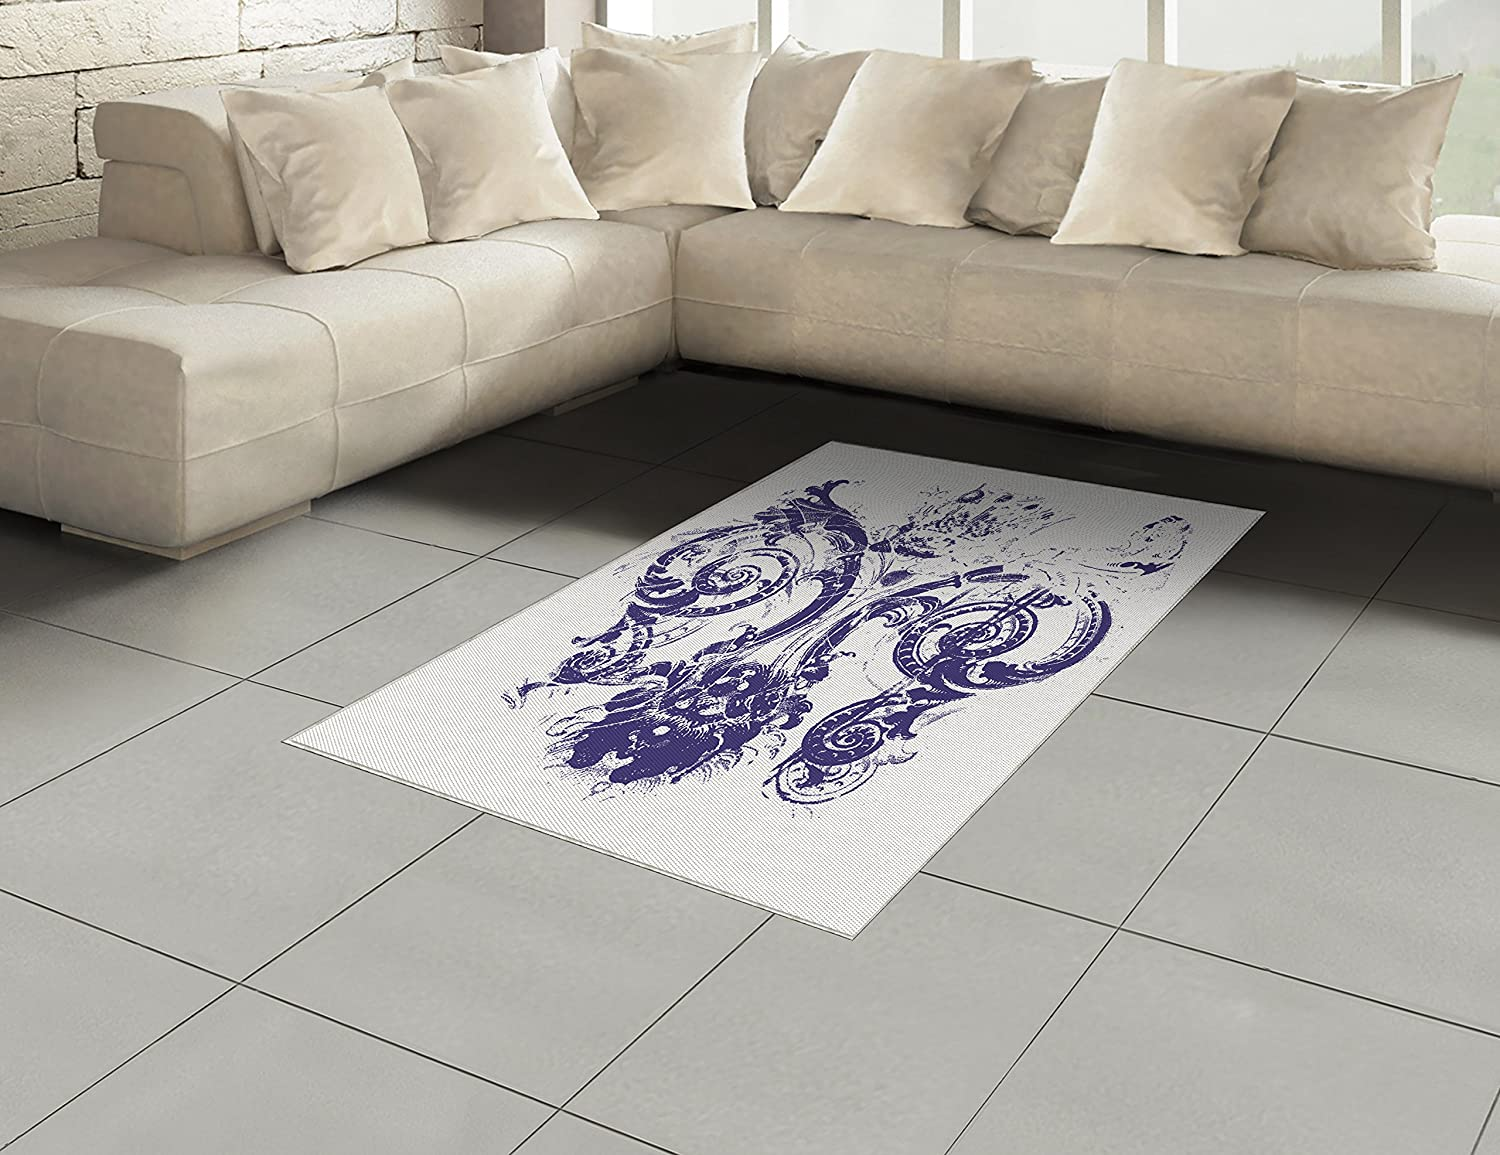 Amazon com ambesonne fleur de lis area rug digital grunge lily emperor flag victorian kingdom imperial theme print flat woven accent rug for living room